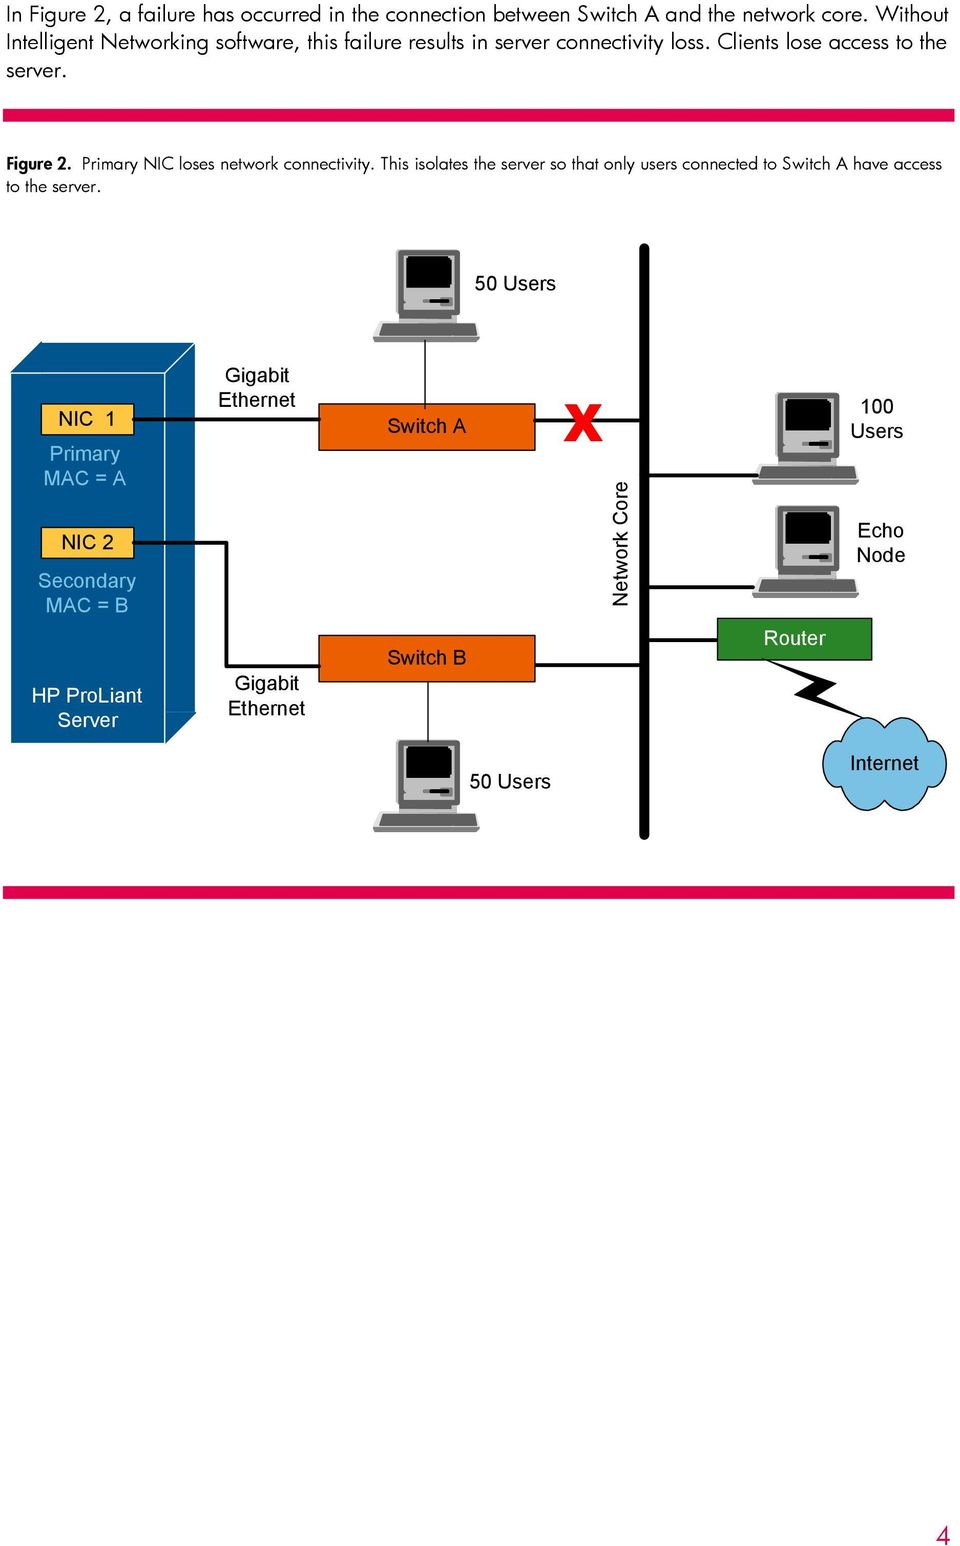 Figure 2. Primary NIC loses network connectivity.